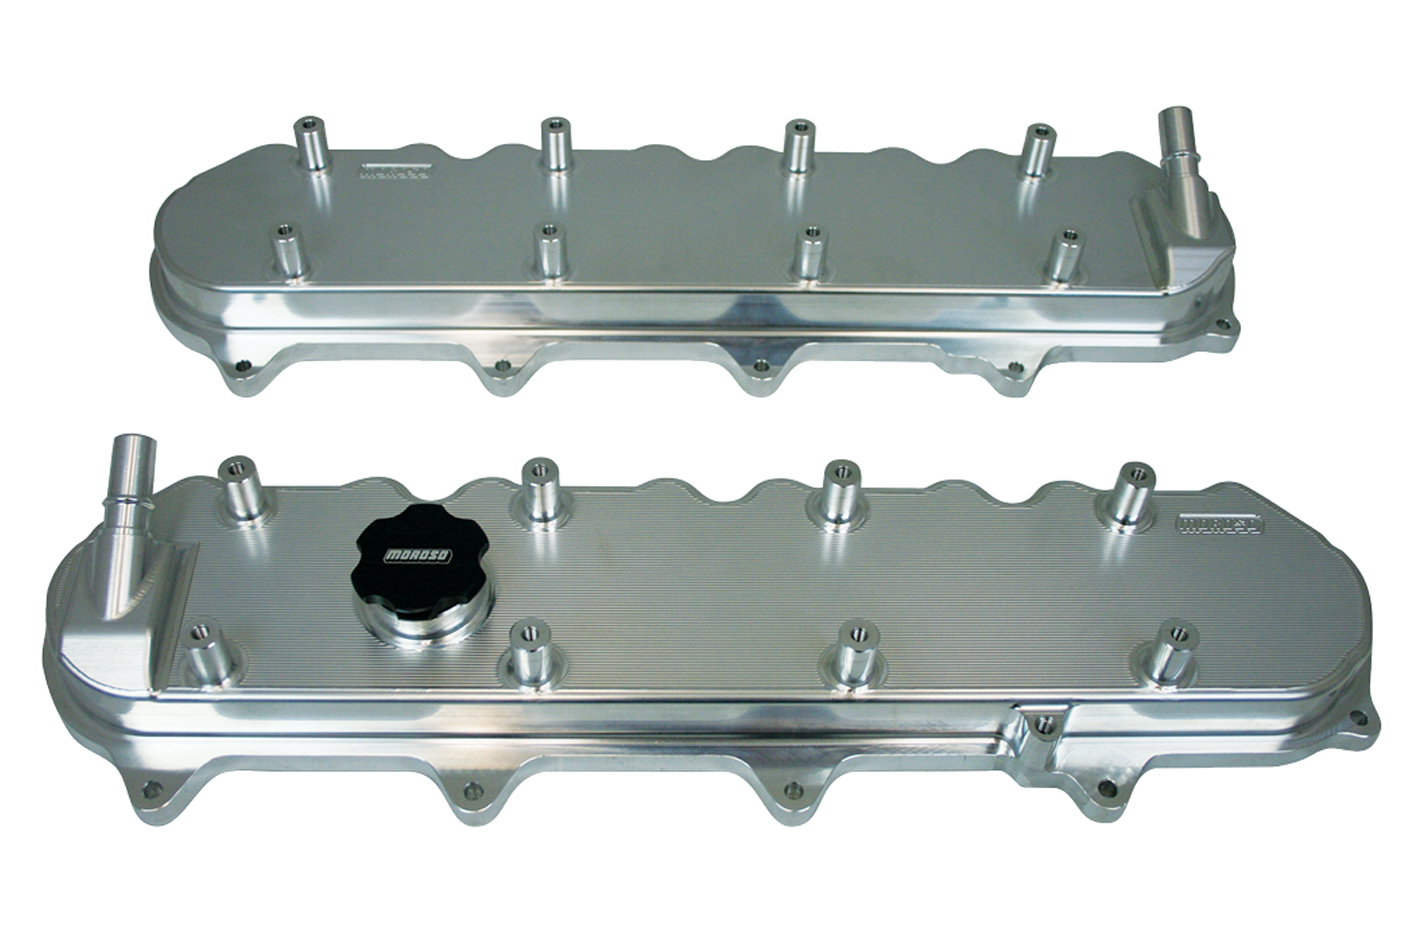 Moroso 68494 Valve Cover, Short, Coil Pack Mounts, Fabricated Aluminum, Natural, GM LT-Series, Each